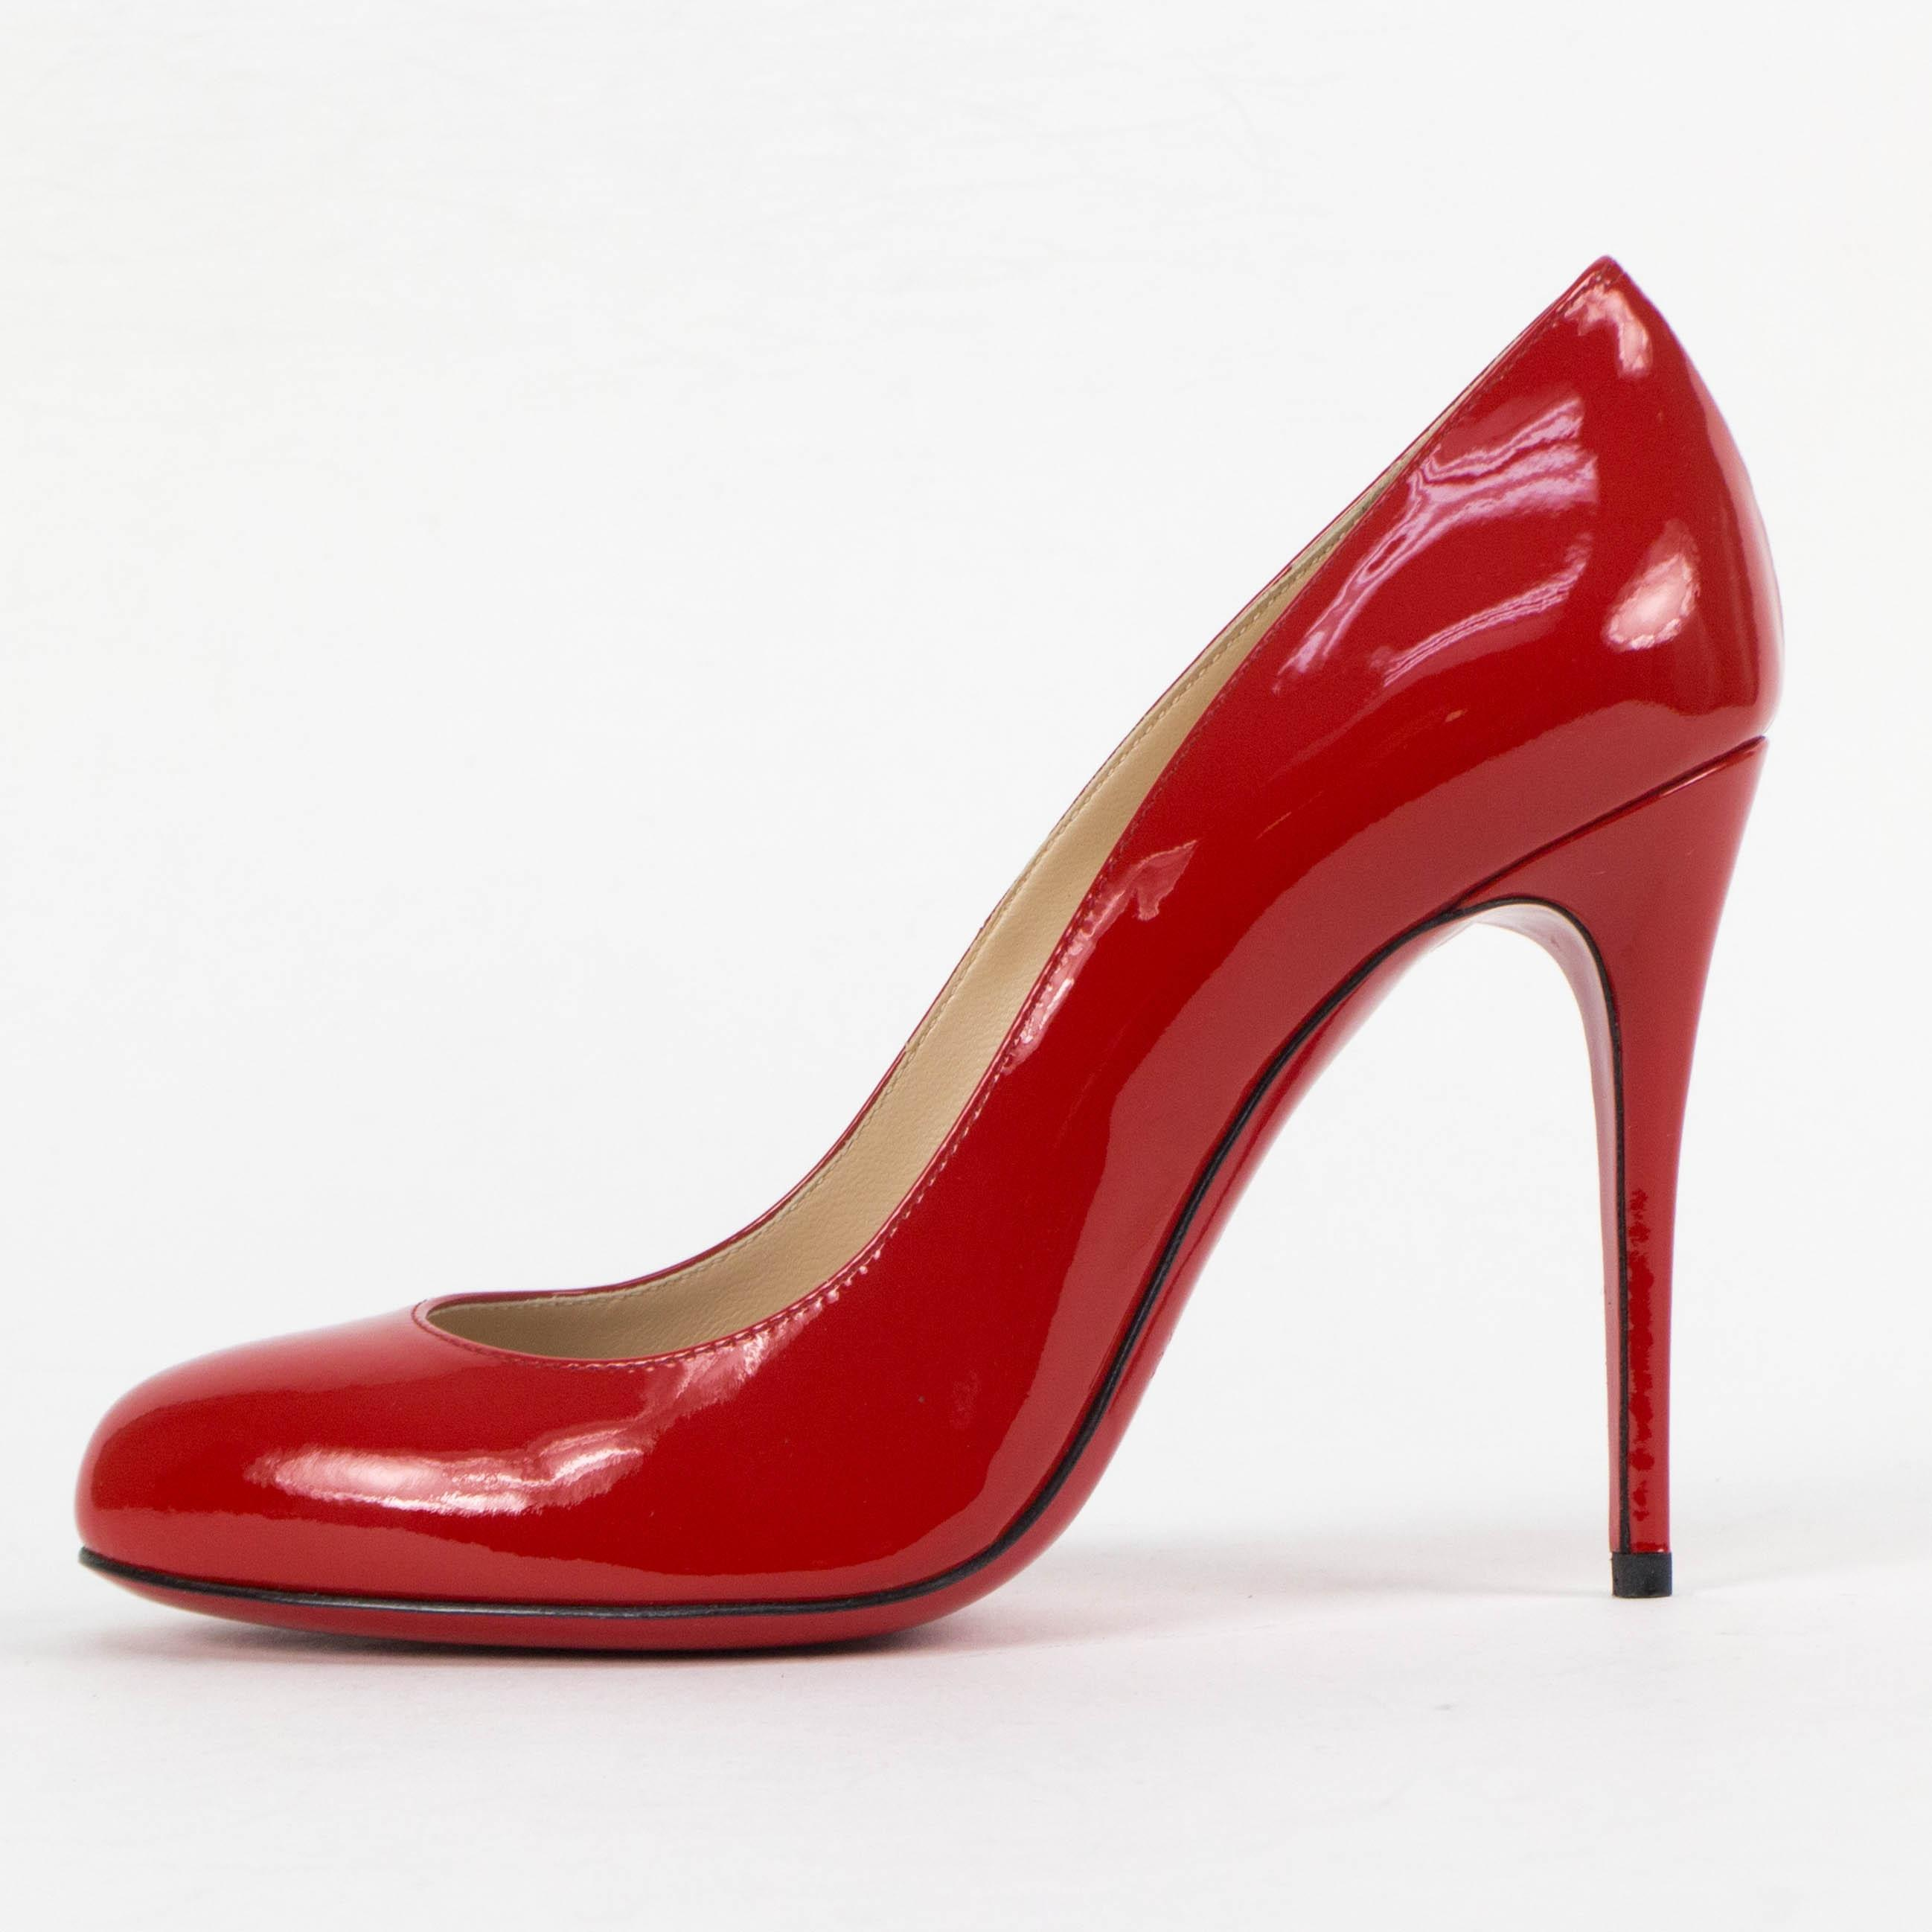 cd928034696b ... B Christian Louboutin Red Red Red Fifi Collection Pumps Size US 6.5  Regular (M